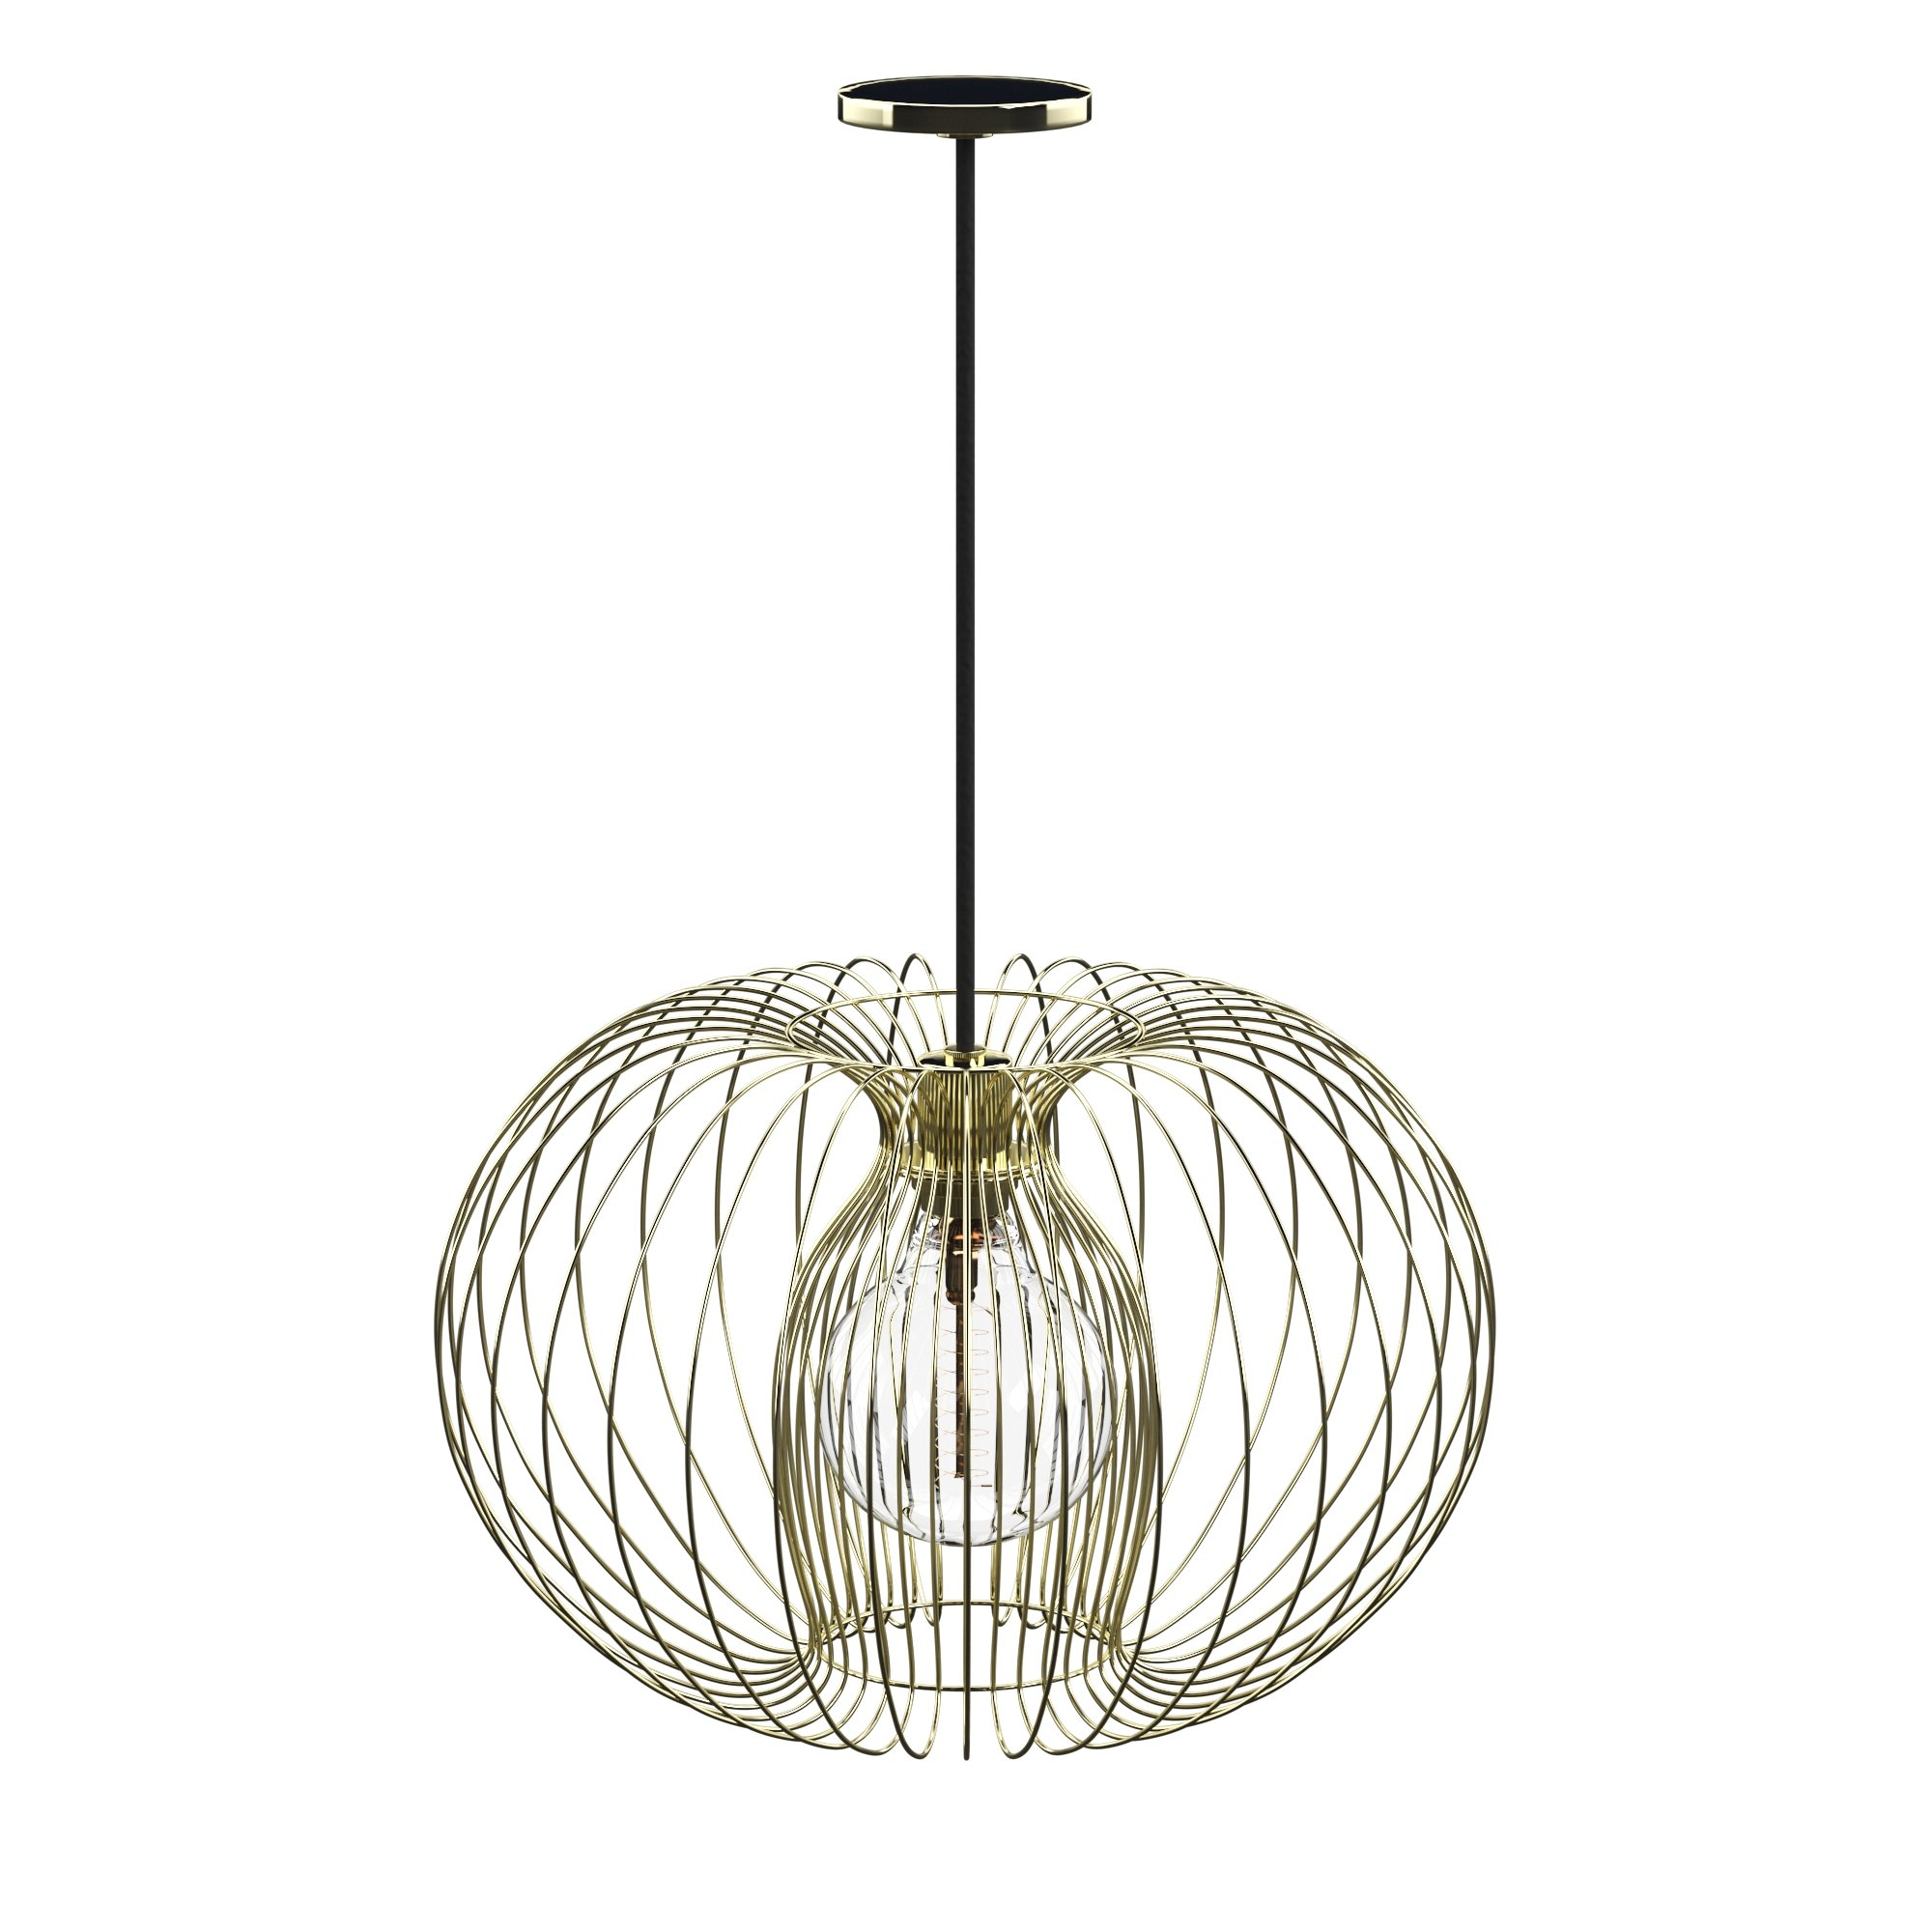 Kass 1 Light Geometric Pendant Pertaining To Most Up To Date Hydetown 1 Light Single Geometric Pendants (View 14 of 25)